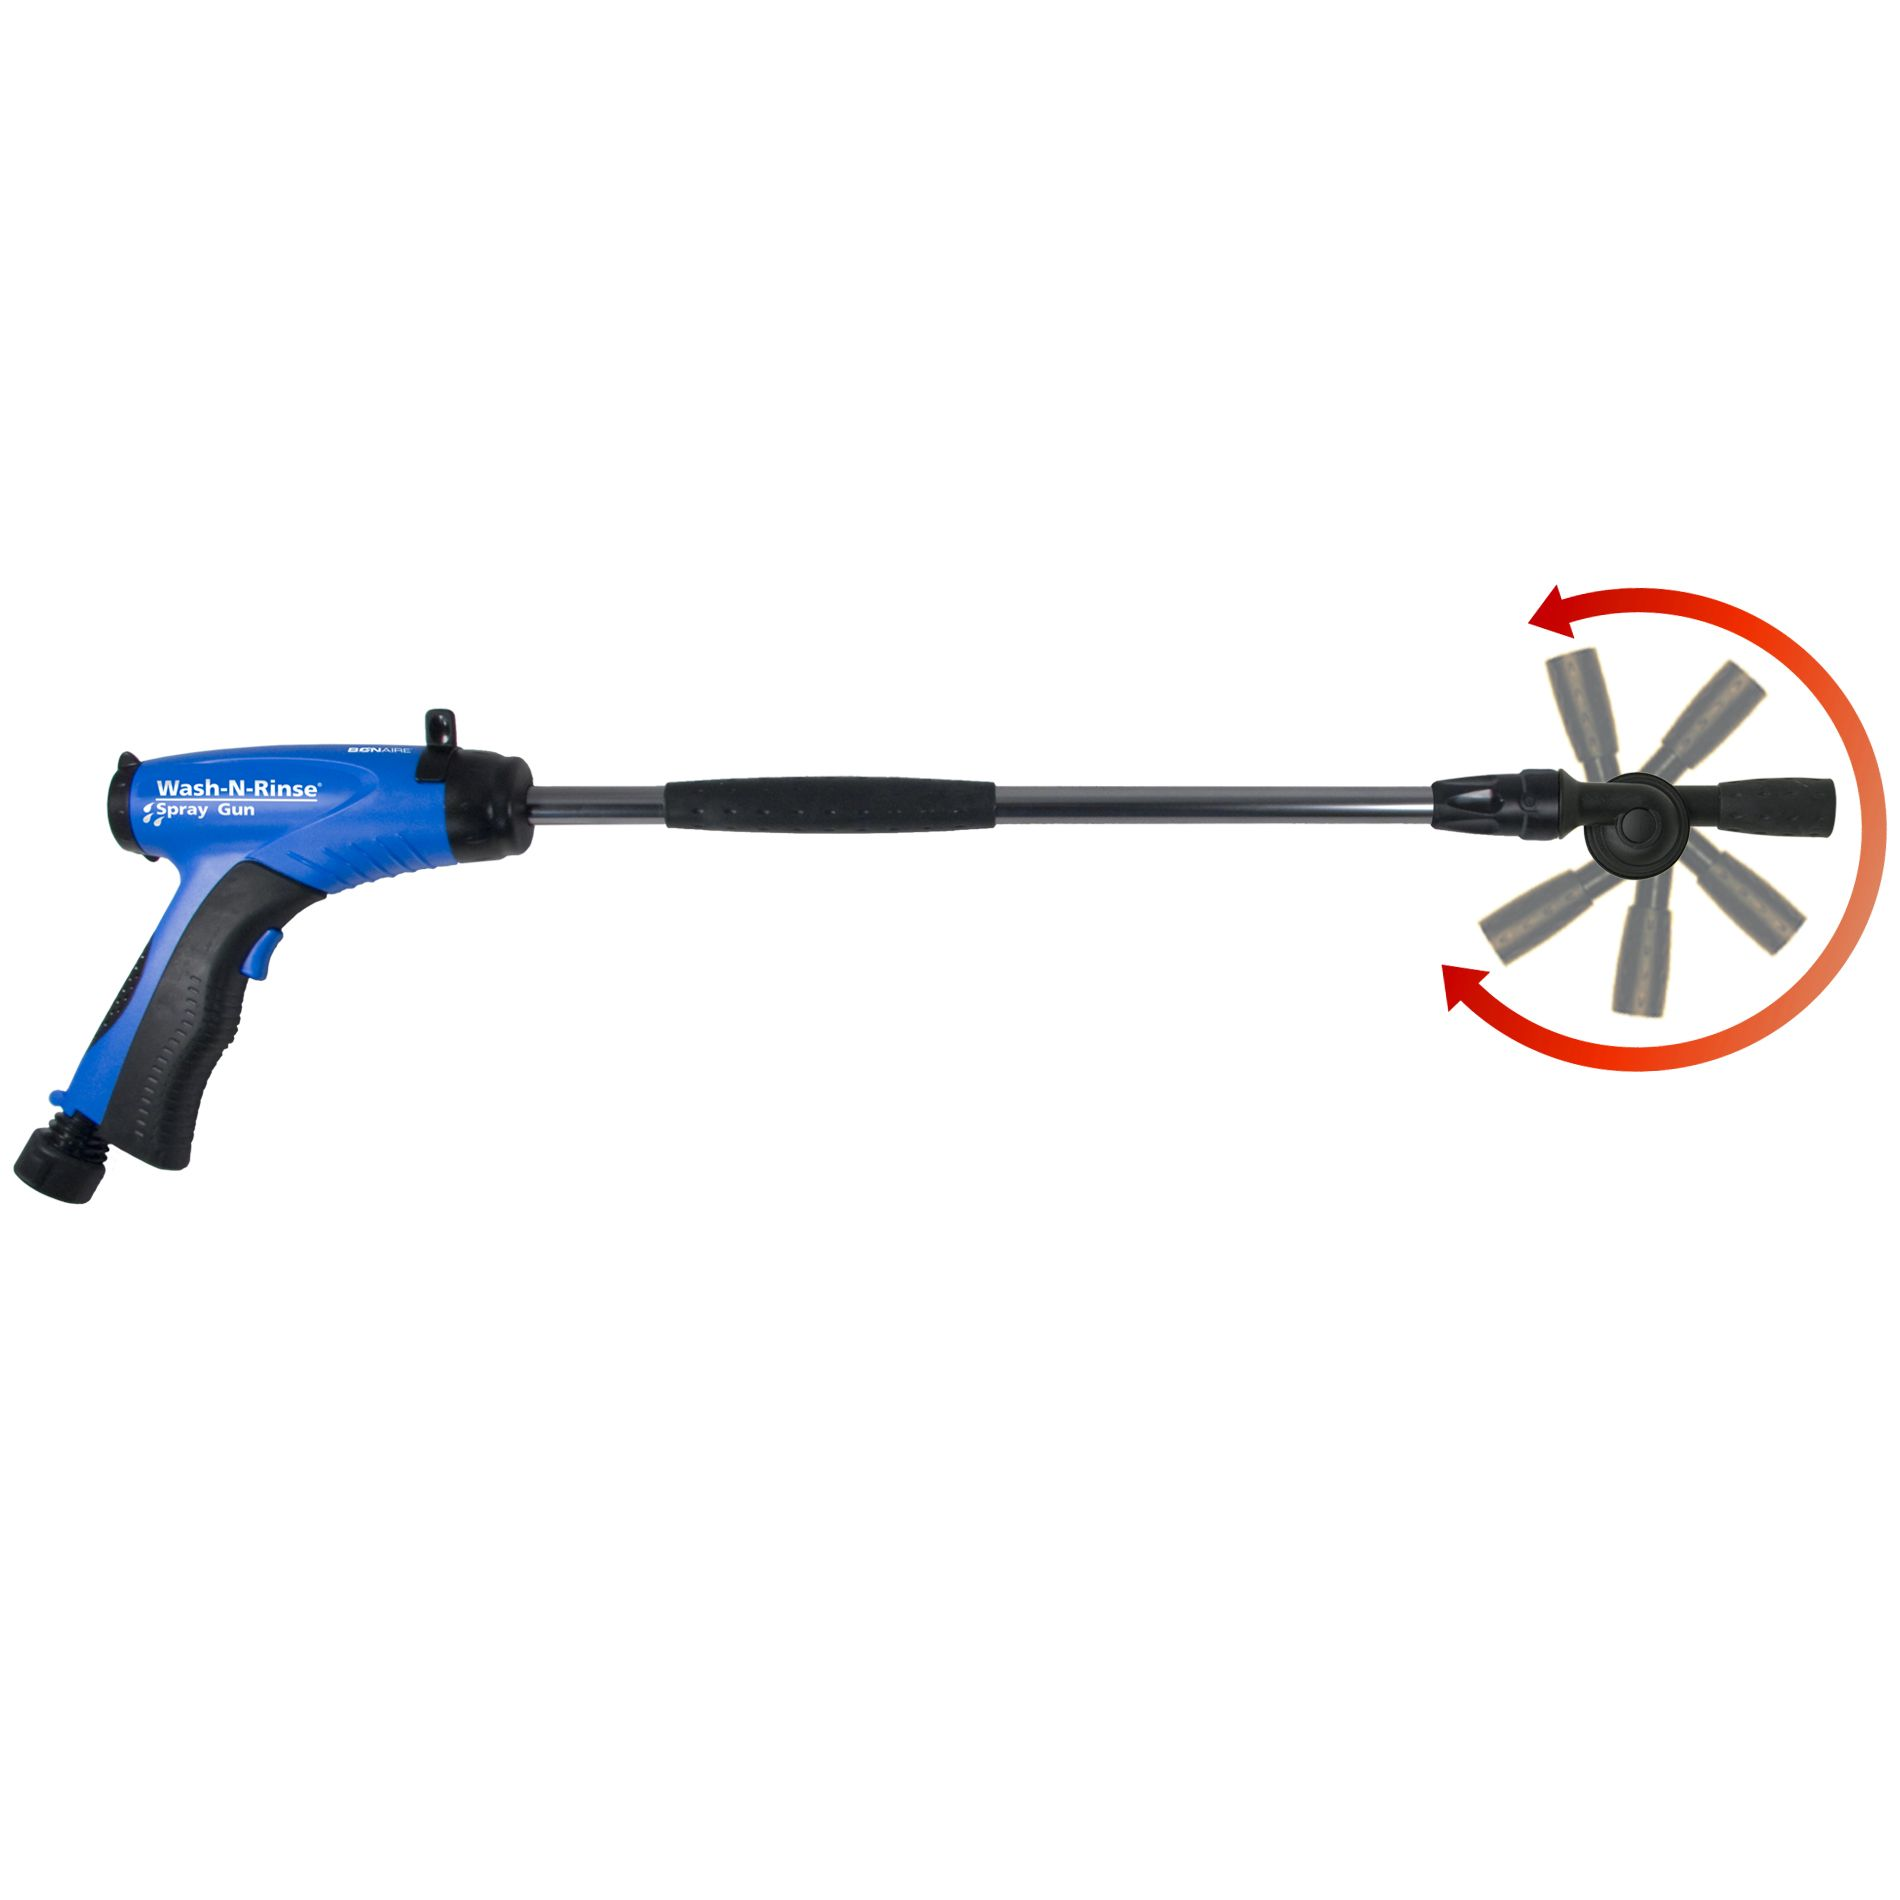 Wash n Rinse Spray Gun